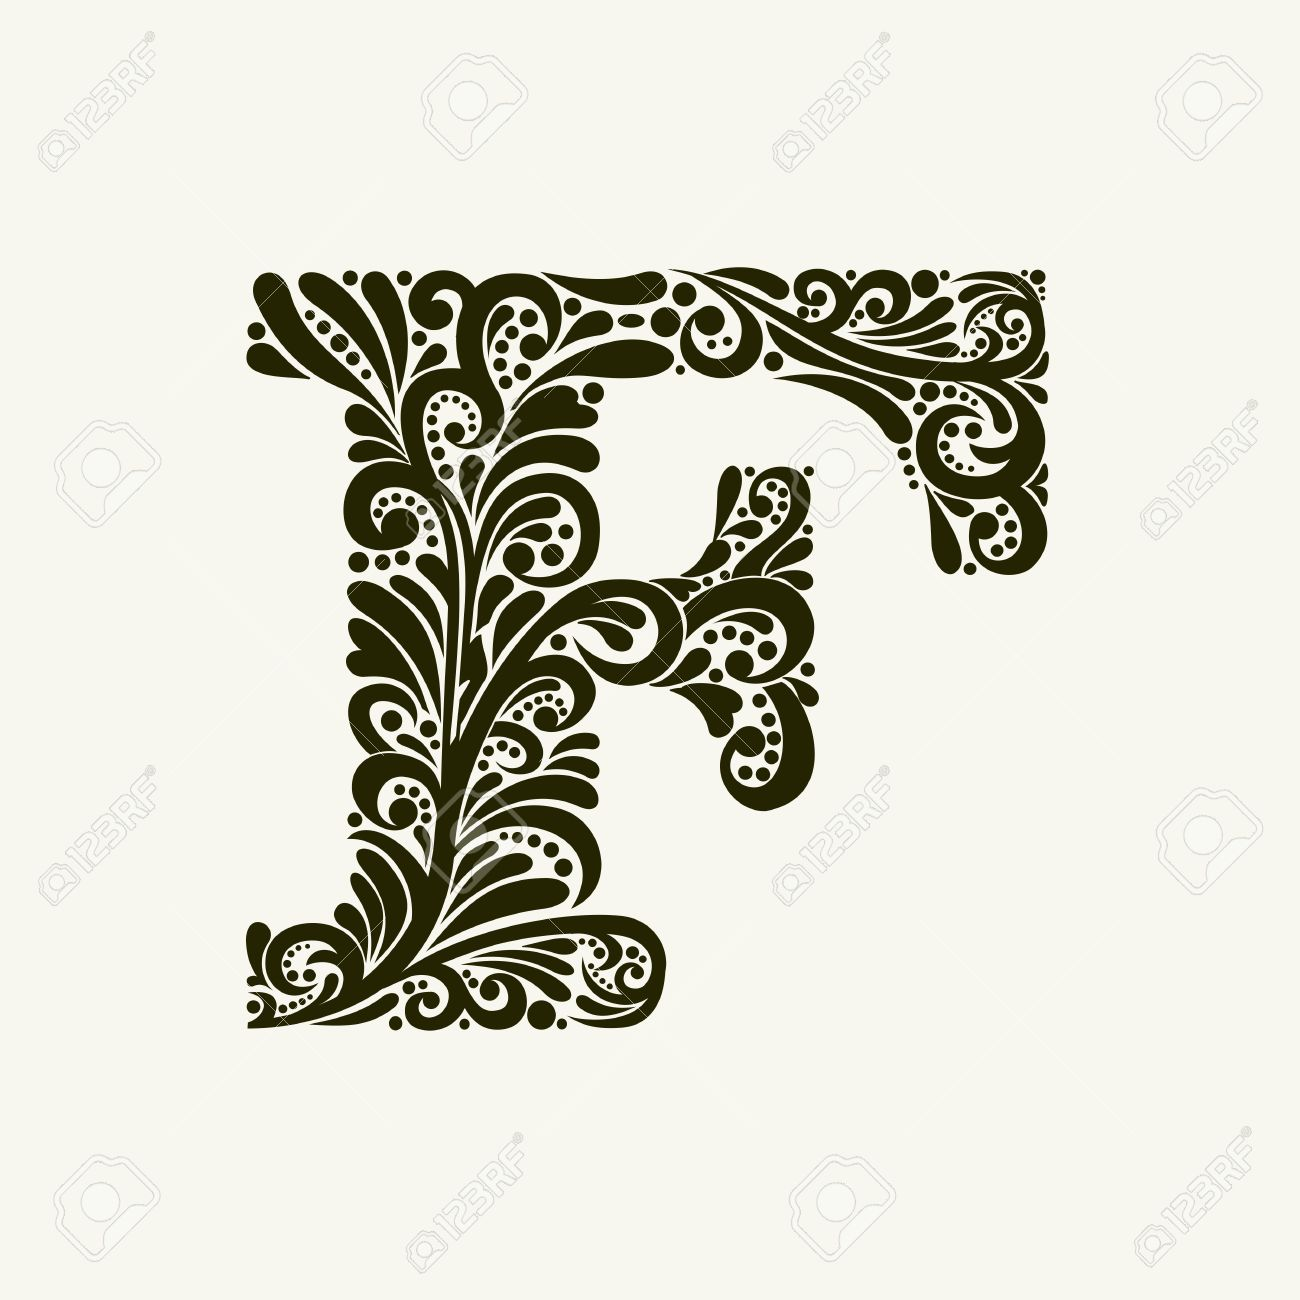 Elegant Capital Letter F In The Style Of Baroque To Use Monograms Logos